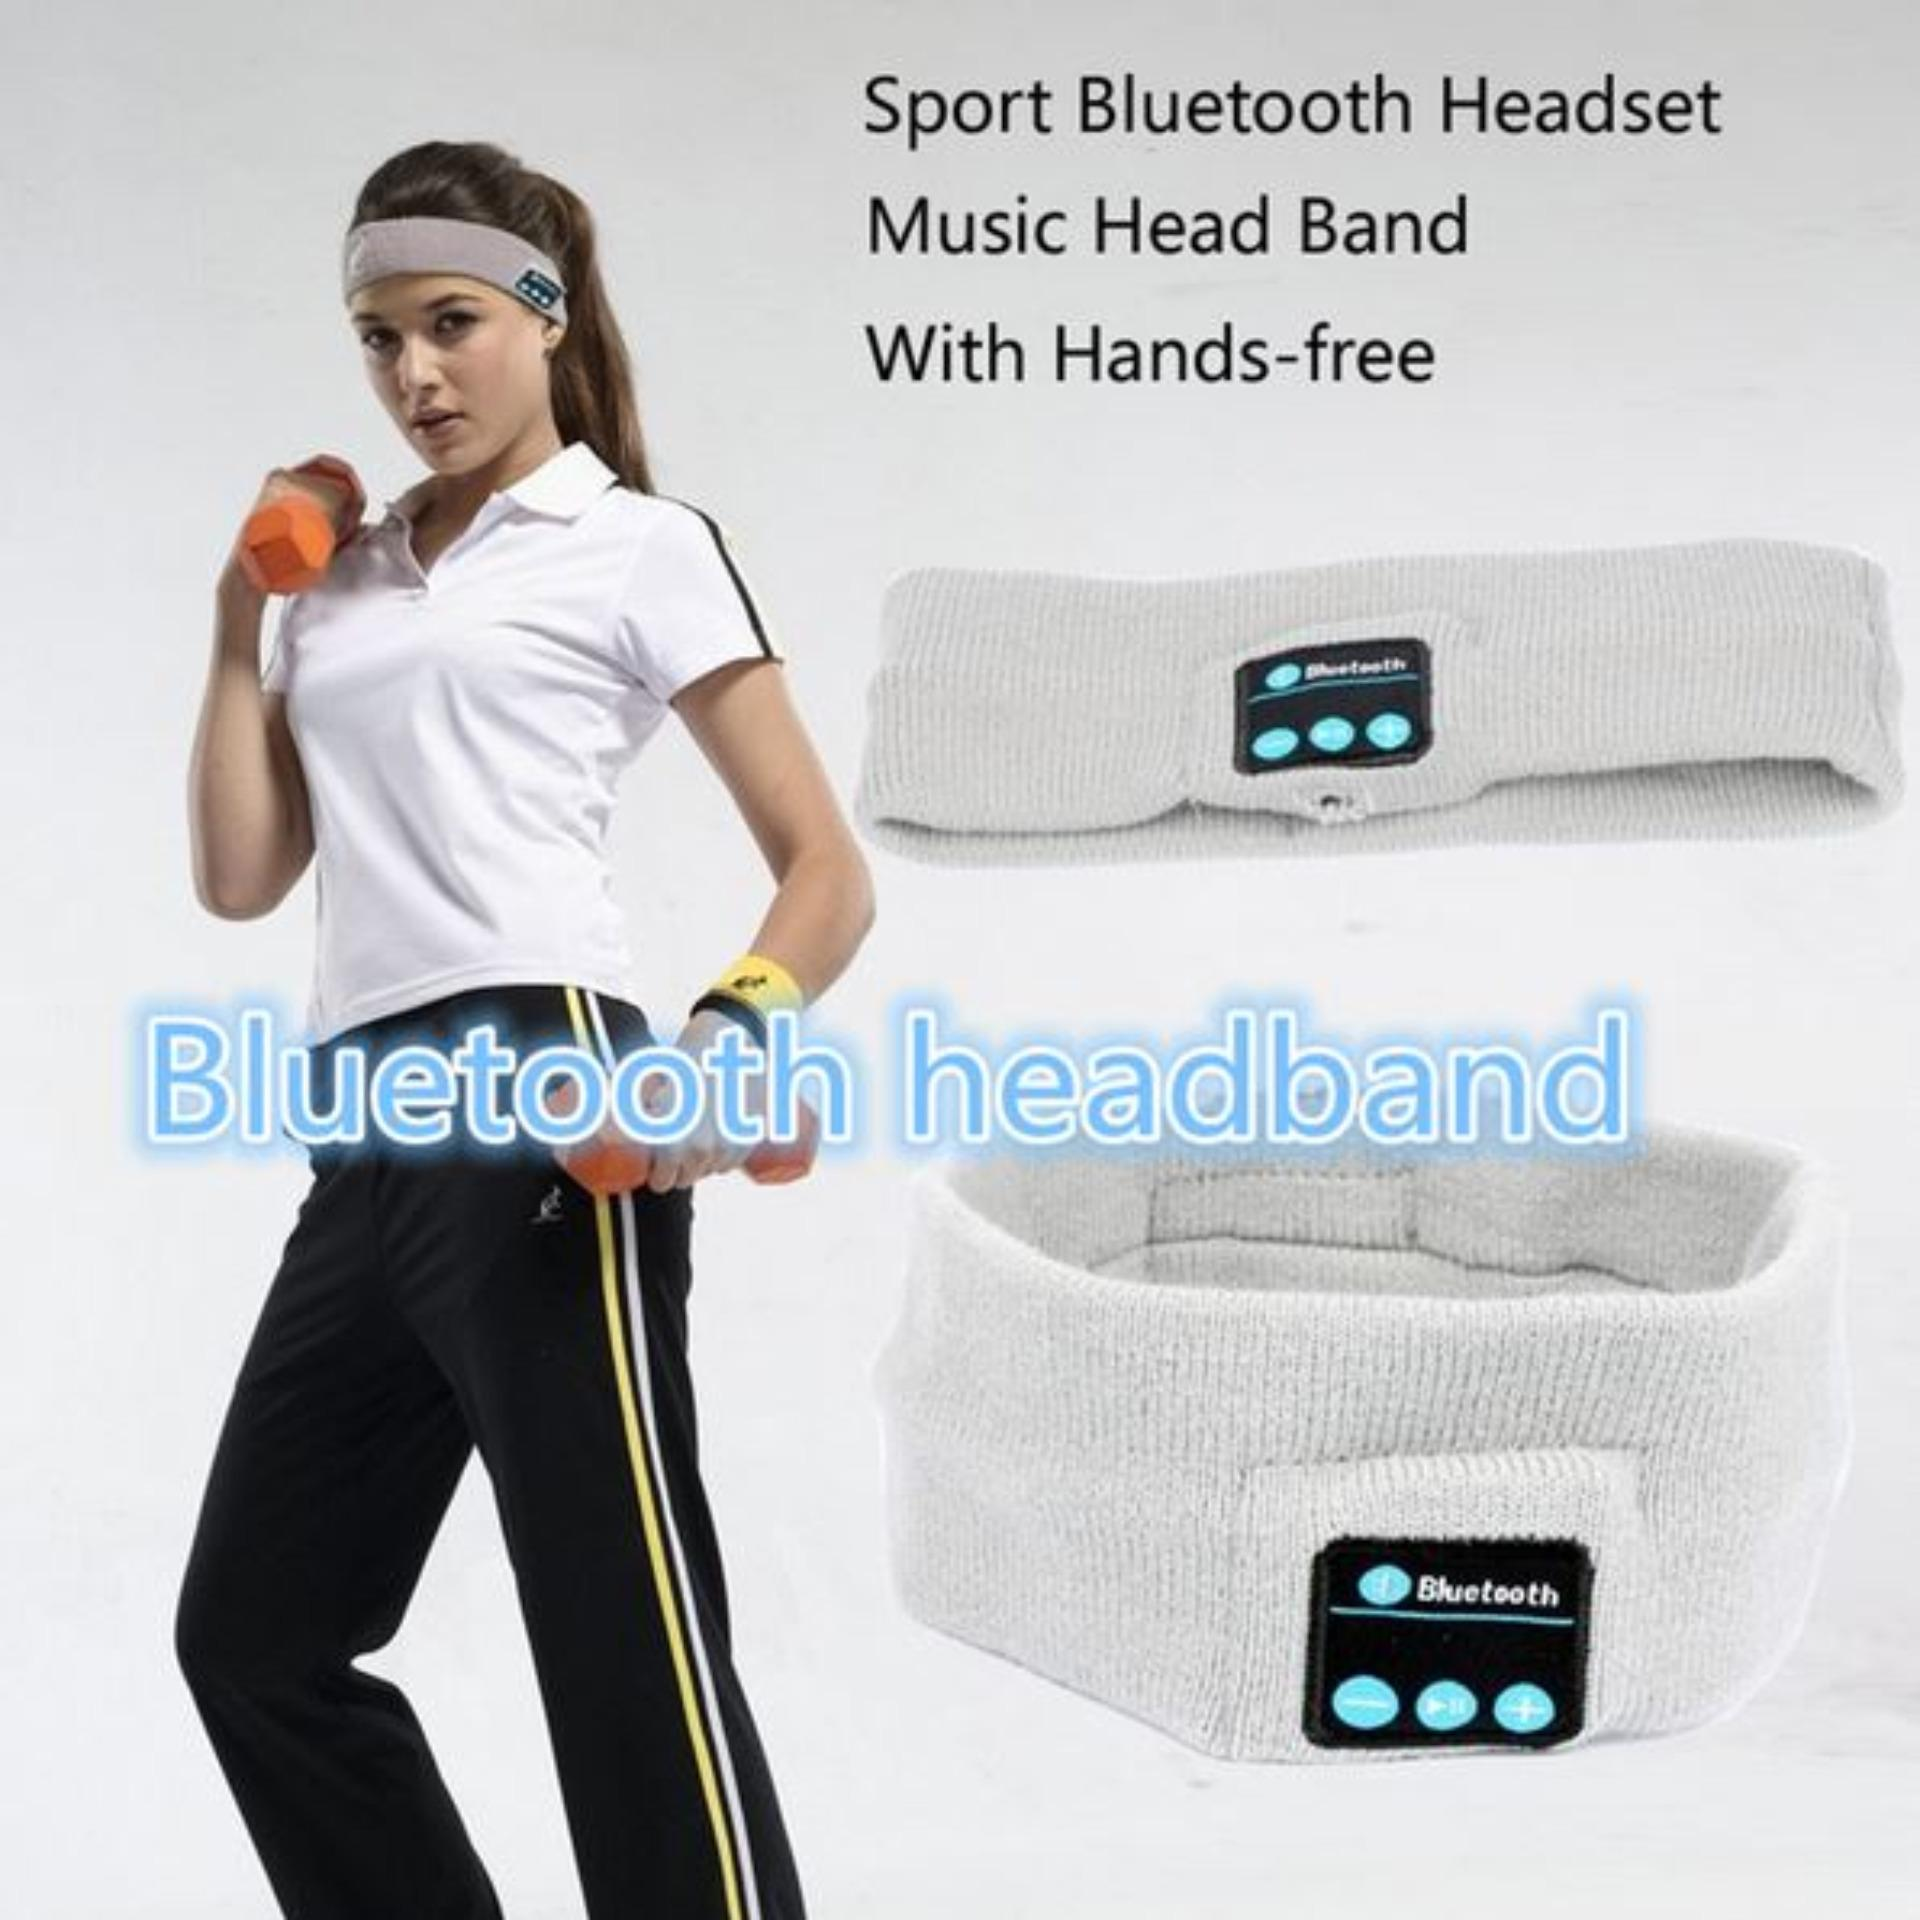 Harga Best Hat Headband Olahraga Musik Stereo Bluetooth Earphone Built In Microphone Earphone Topi Wireless Bluetooth Headband Banten